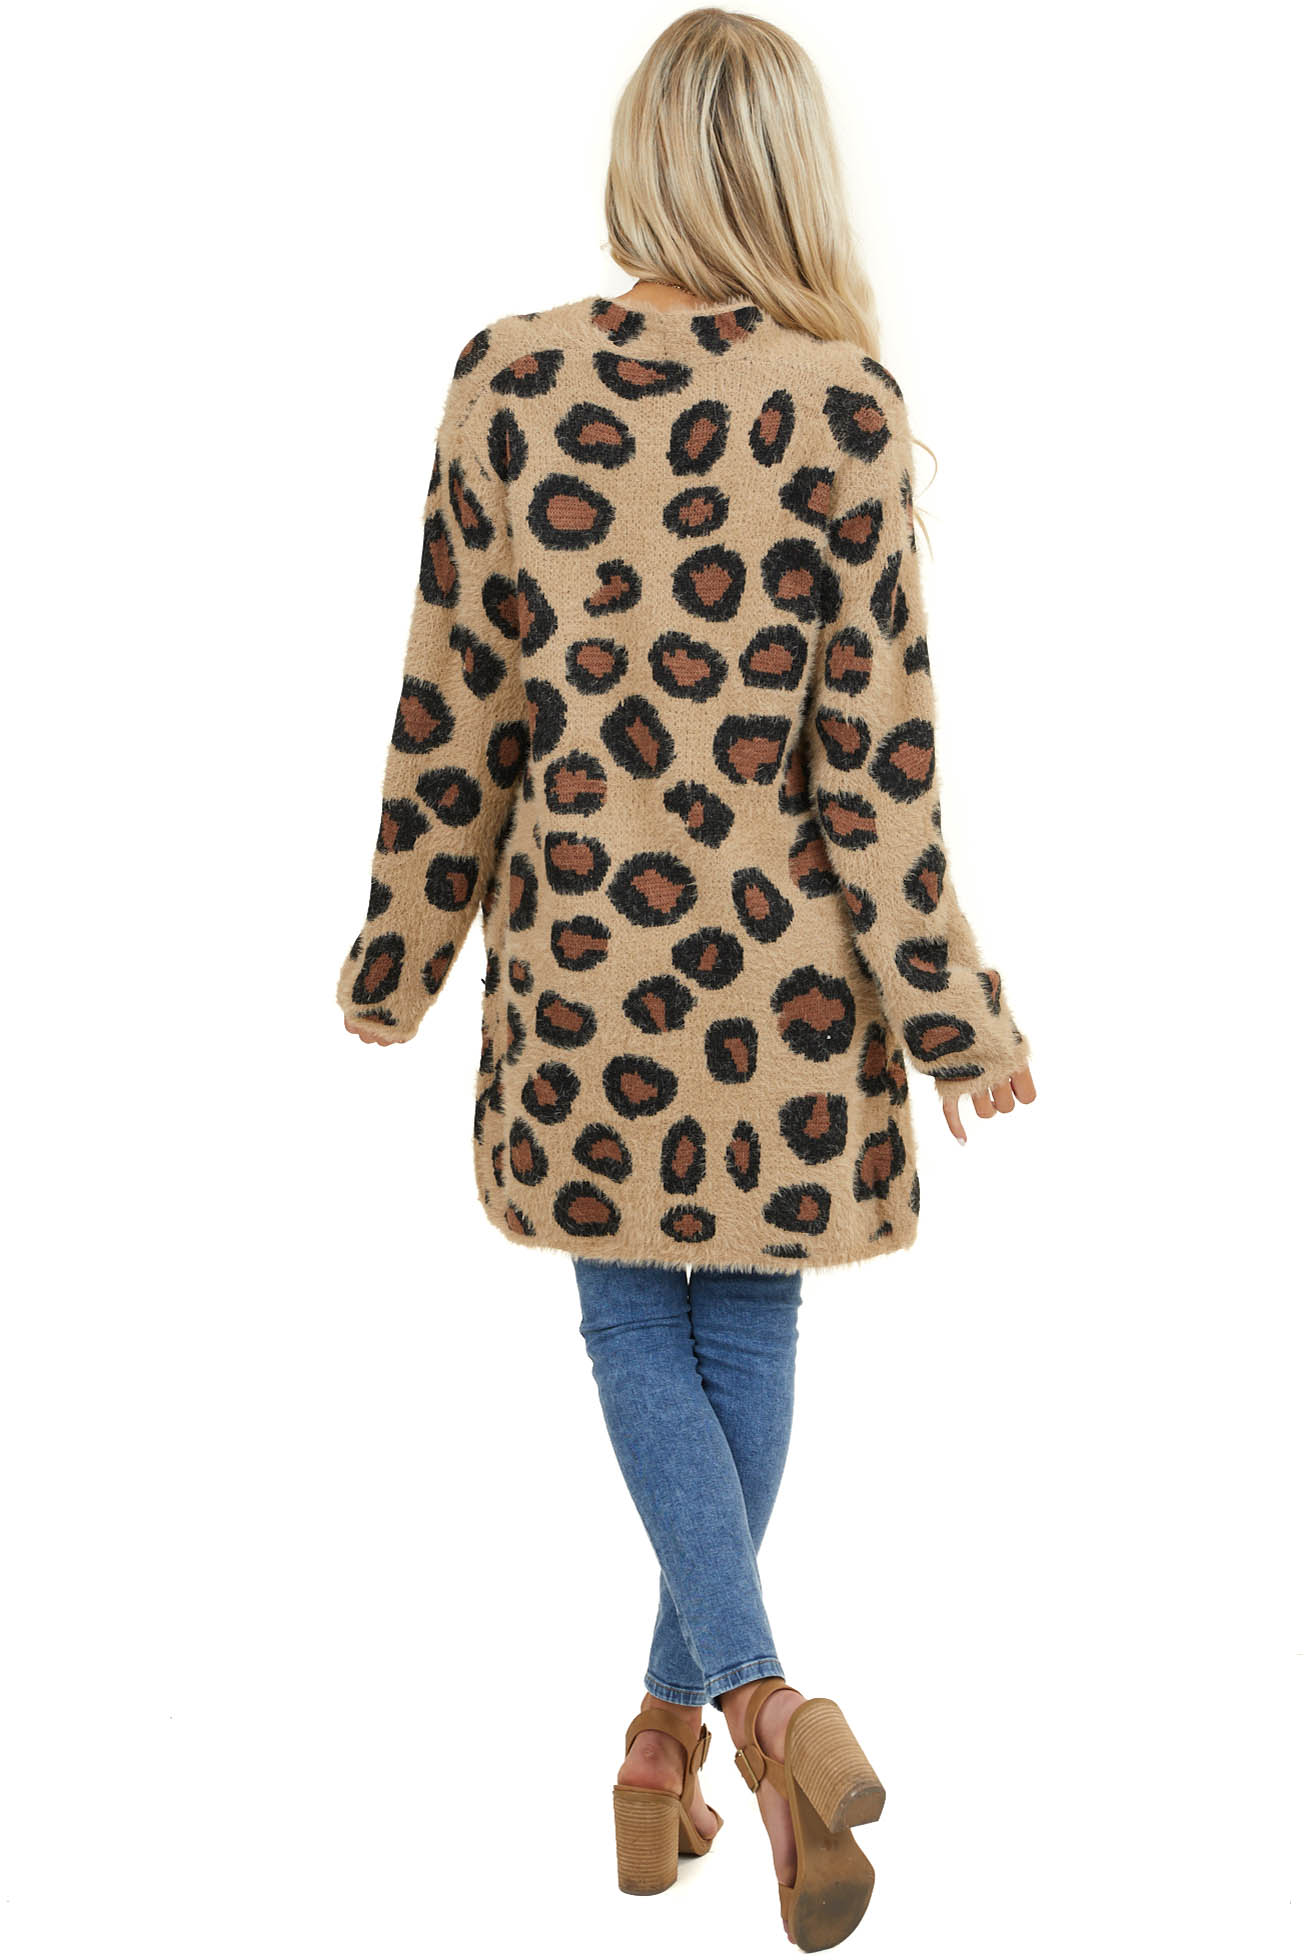 Tan Super Soft Fuzzy Leopard Print Open Front Cardigan